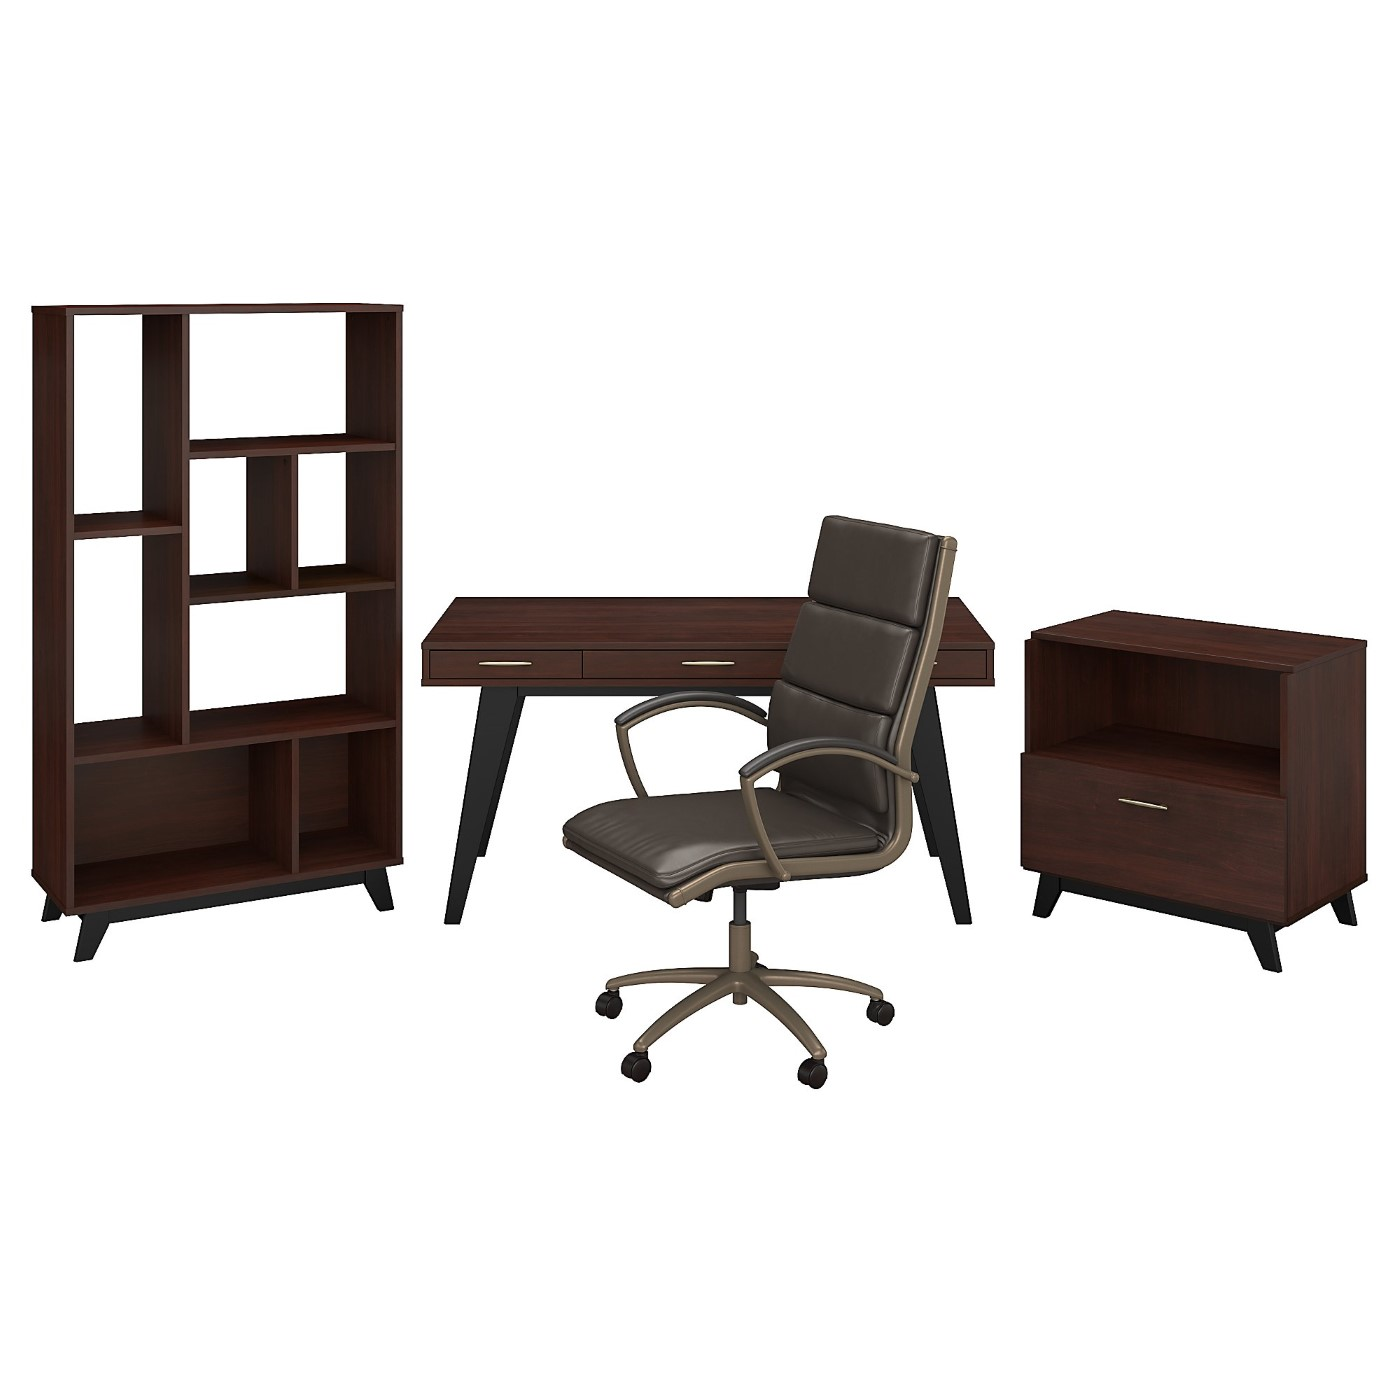 </b></font><b>The kathy ireland� Centura 60W x 30D Writing Desk with Lateral File Cabinet, Bookcase and High Back Leather Office Chair is Sustainable Eco Friendly Furniture. Includes Free Shipping! 30H x 72L x 72W</font>. <p>RATING:&#11088;&#11088;&#11088;&#11088;&#11088;</b></font></b>